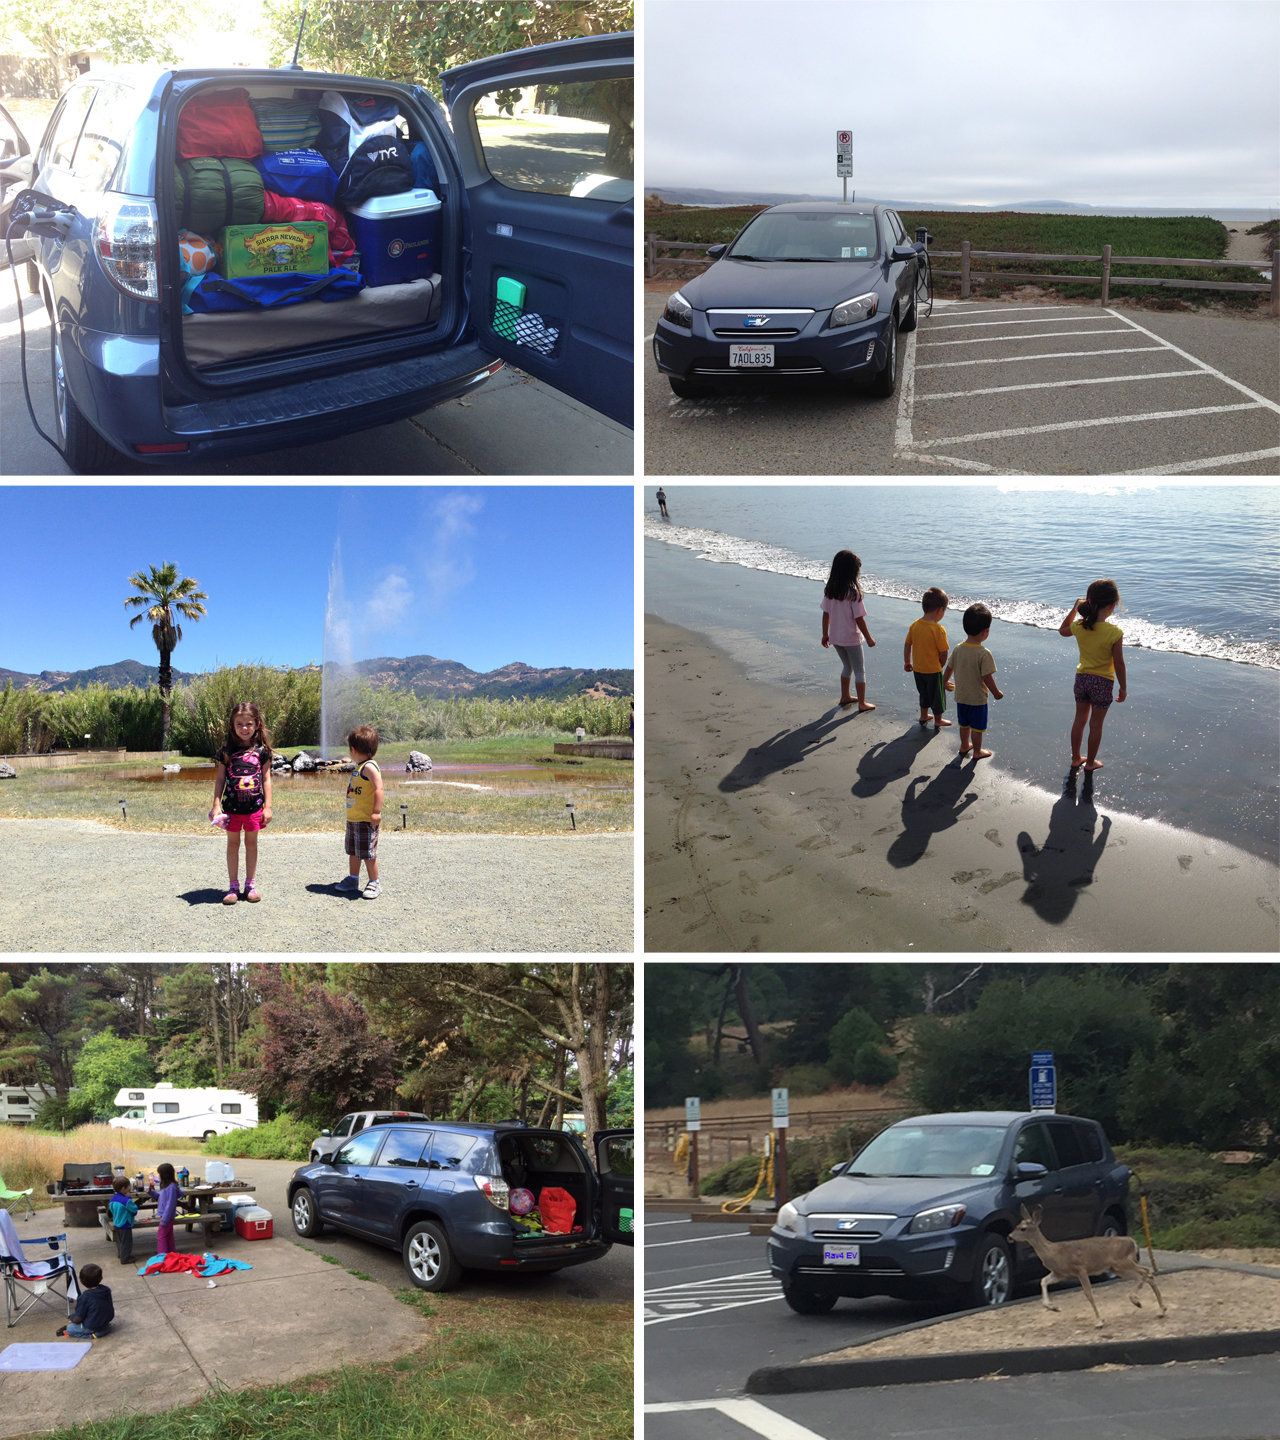 Camping trips to Bodega Bay, Stillwater Cove, and Point Reyes, and a trip to see California's Old Faithful in the Rav4 EV.